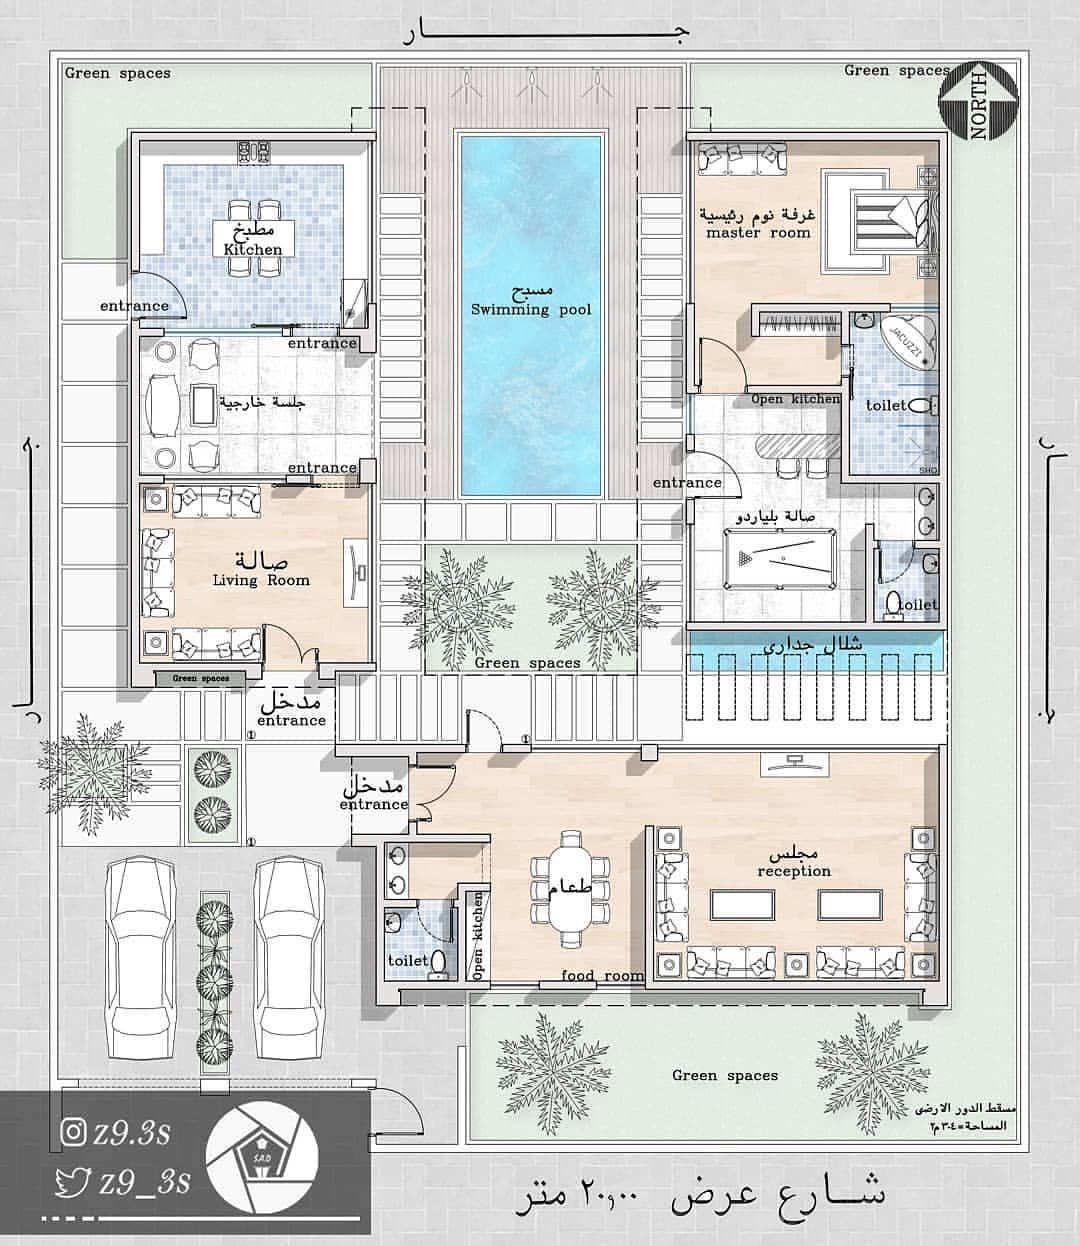 Scon Design On Instagram Architectural Plan Contact Us For Any Type Of Architecture And Interior Floor Plan Design Home Map Design Architectural Floor Plans